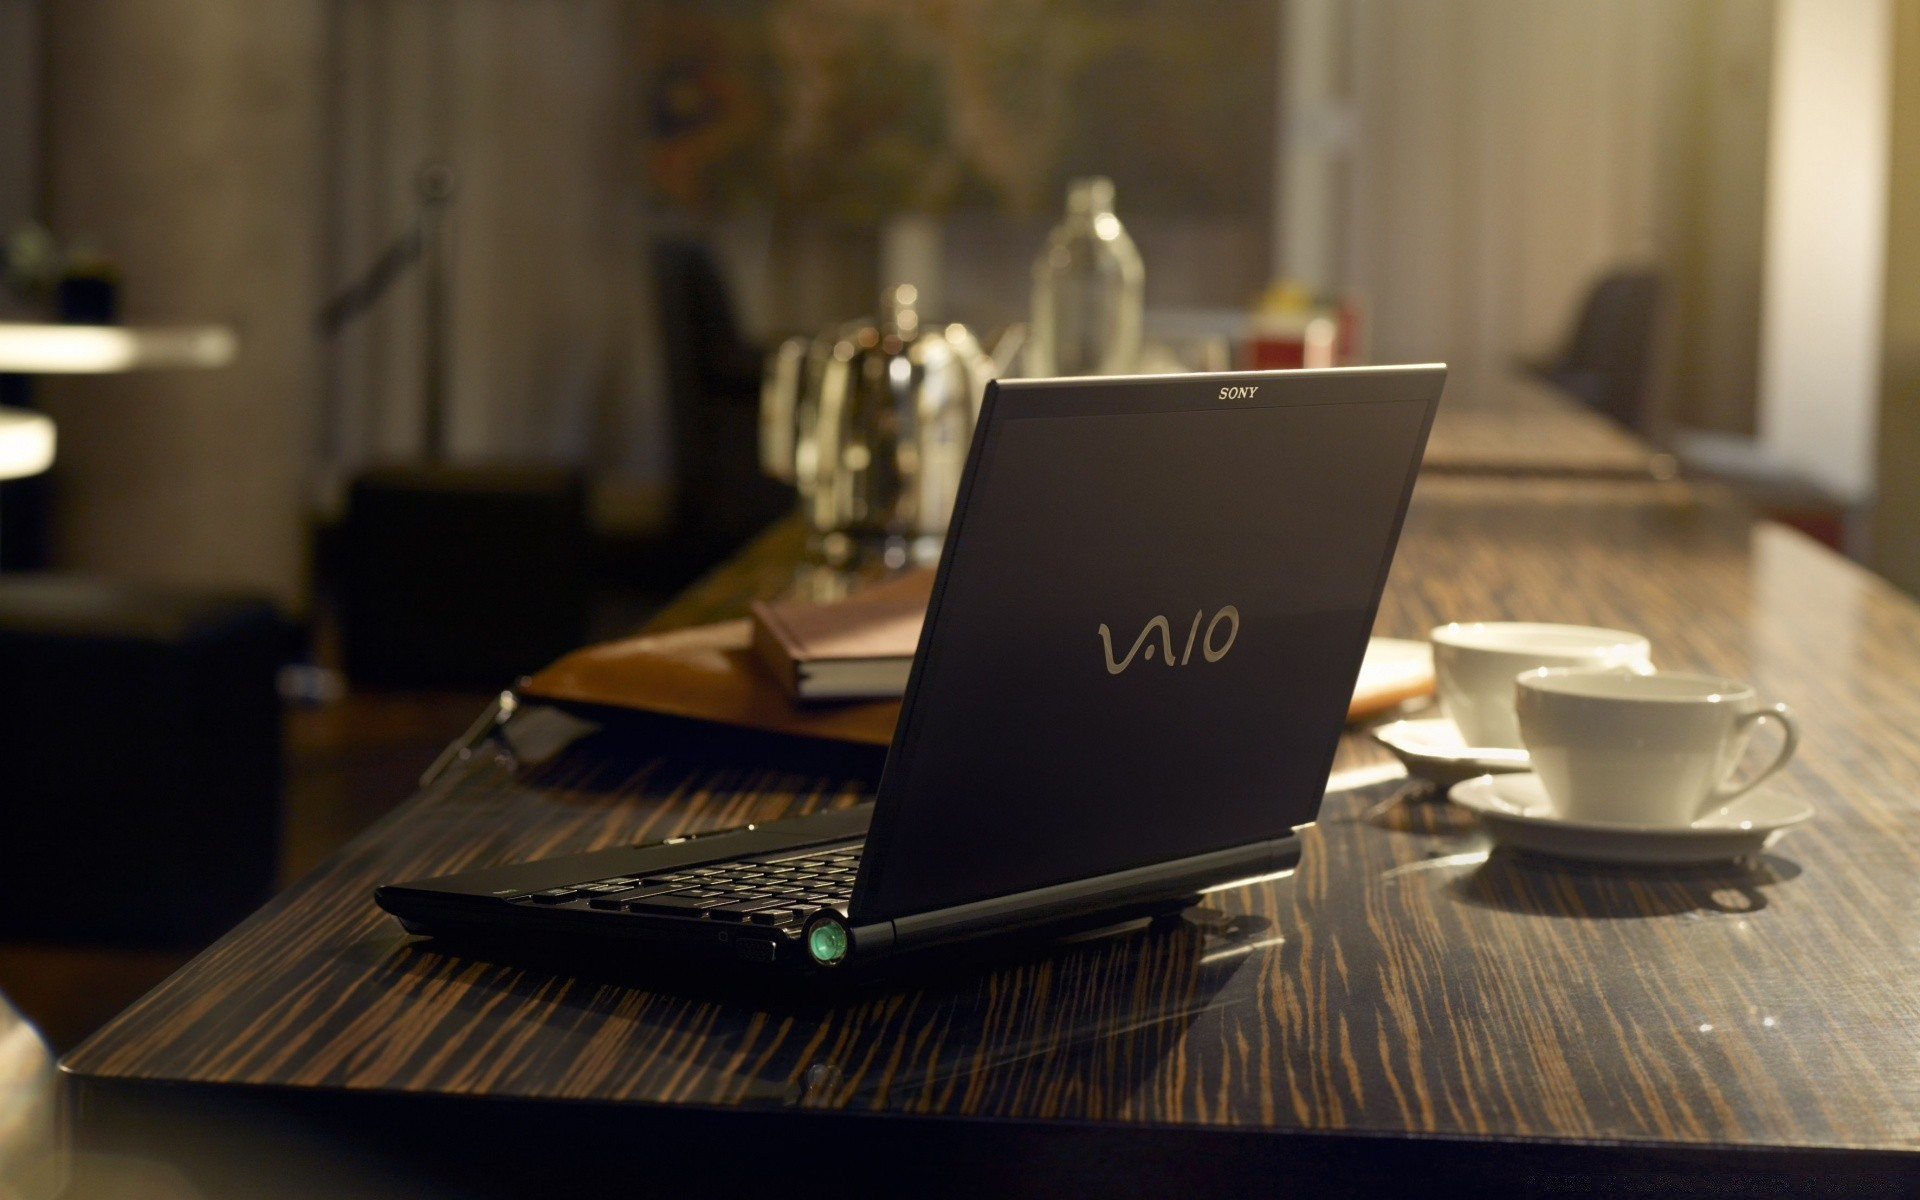 Vaio Table Coffee Indoors Business Laptop Furniture Desk Computer Contemporary Room Office Chair Technology